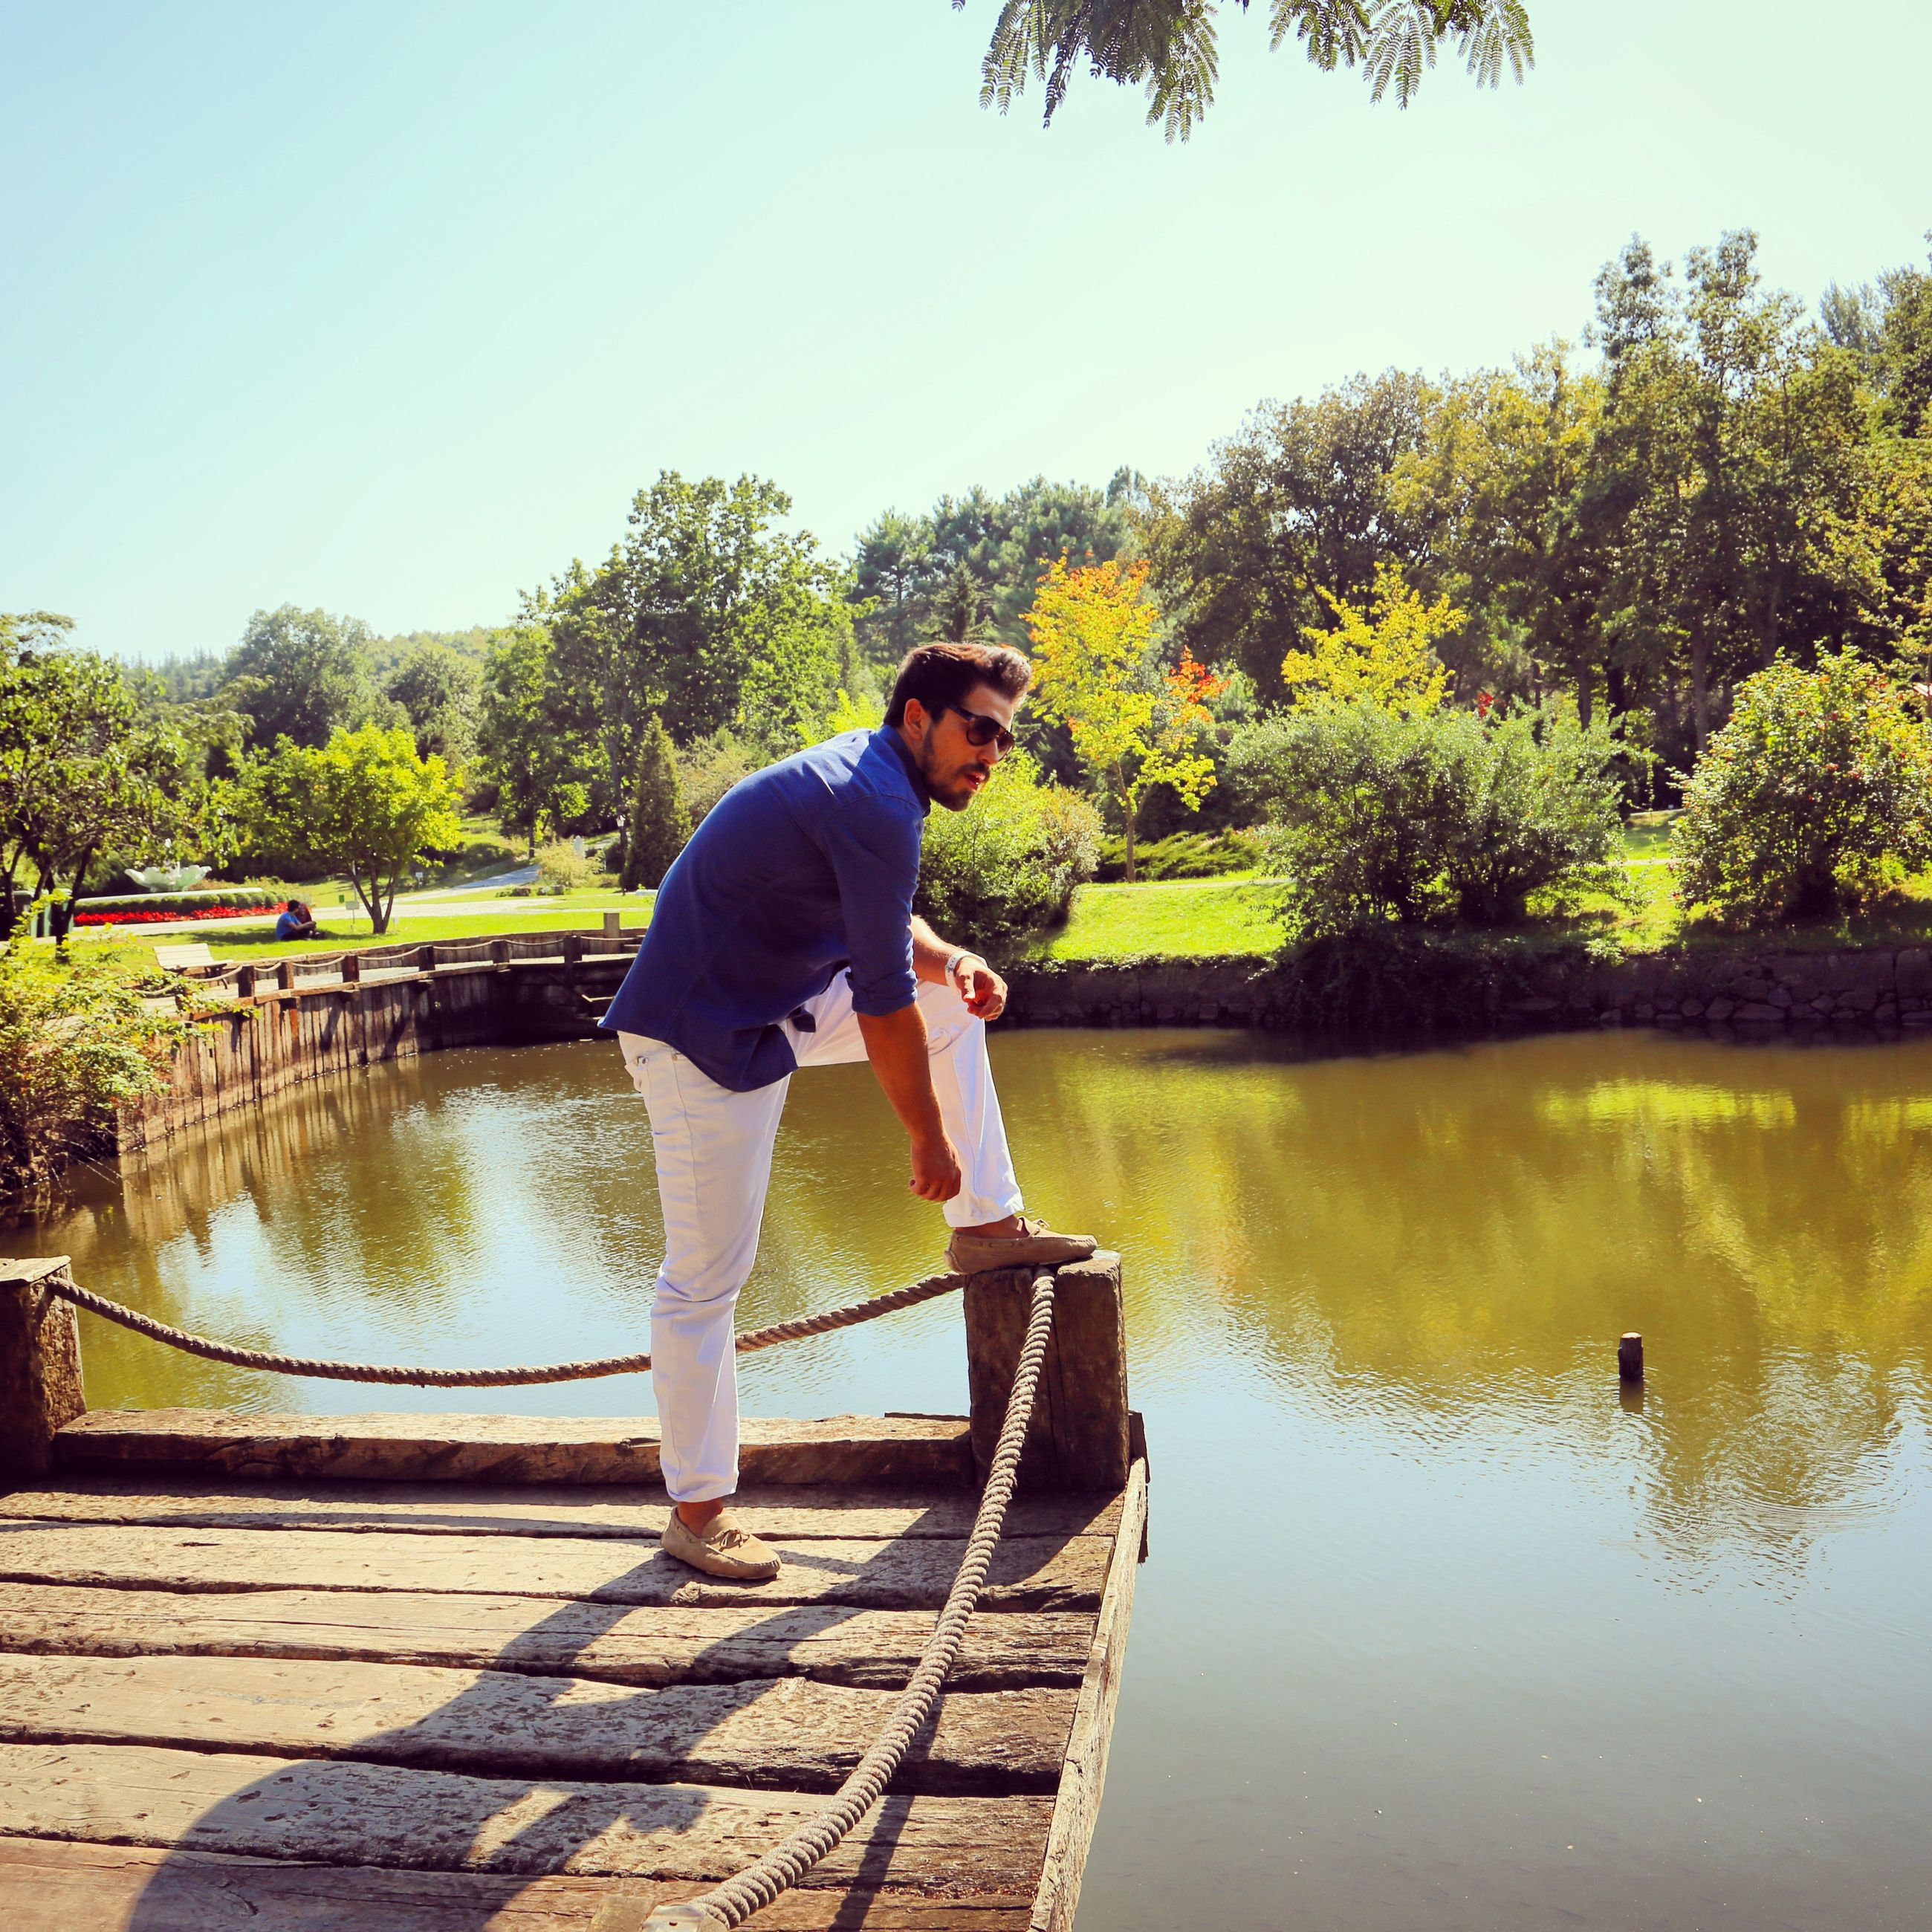 tree, water, full length, lifestyles, casual clothing, leisure activity, clear sky, standing, lake, rear view, young adult, nature, tranquility, river, railing, person, built structure